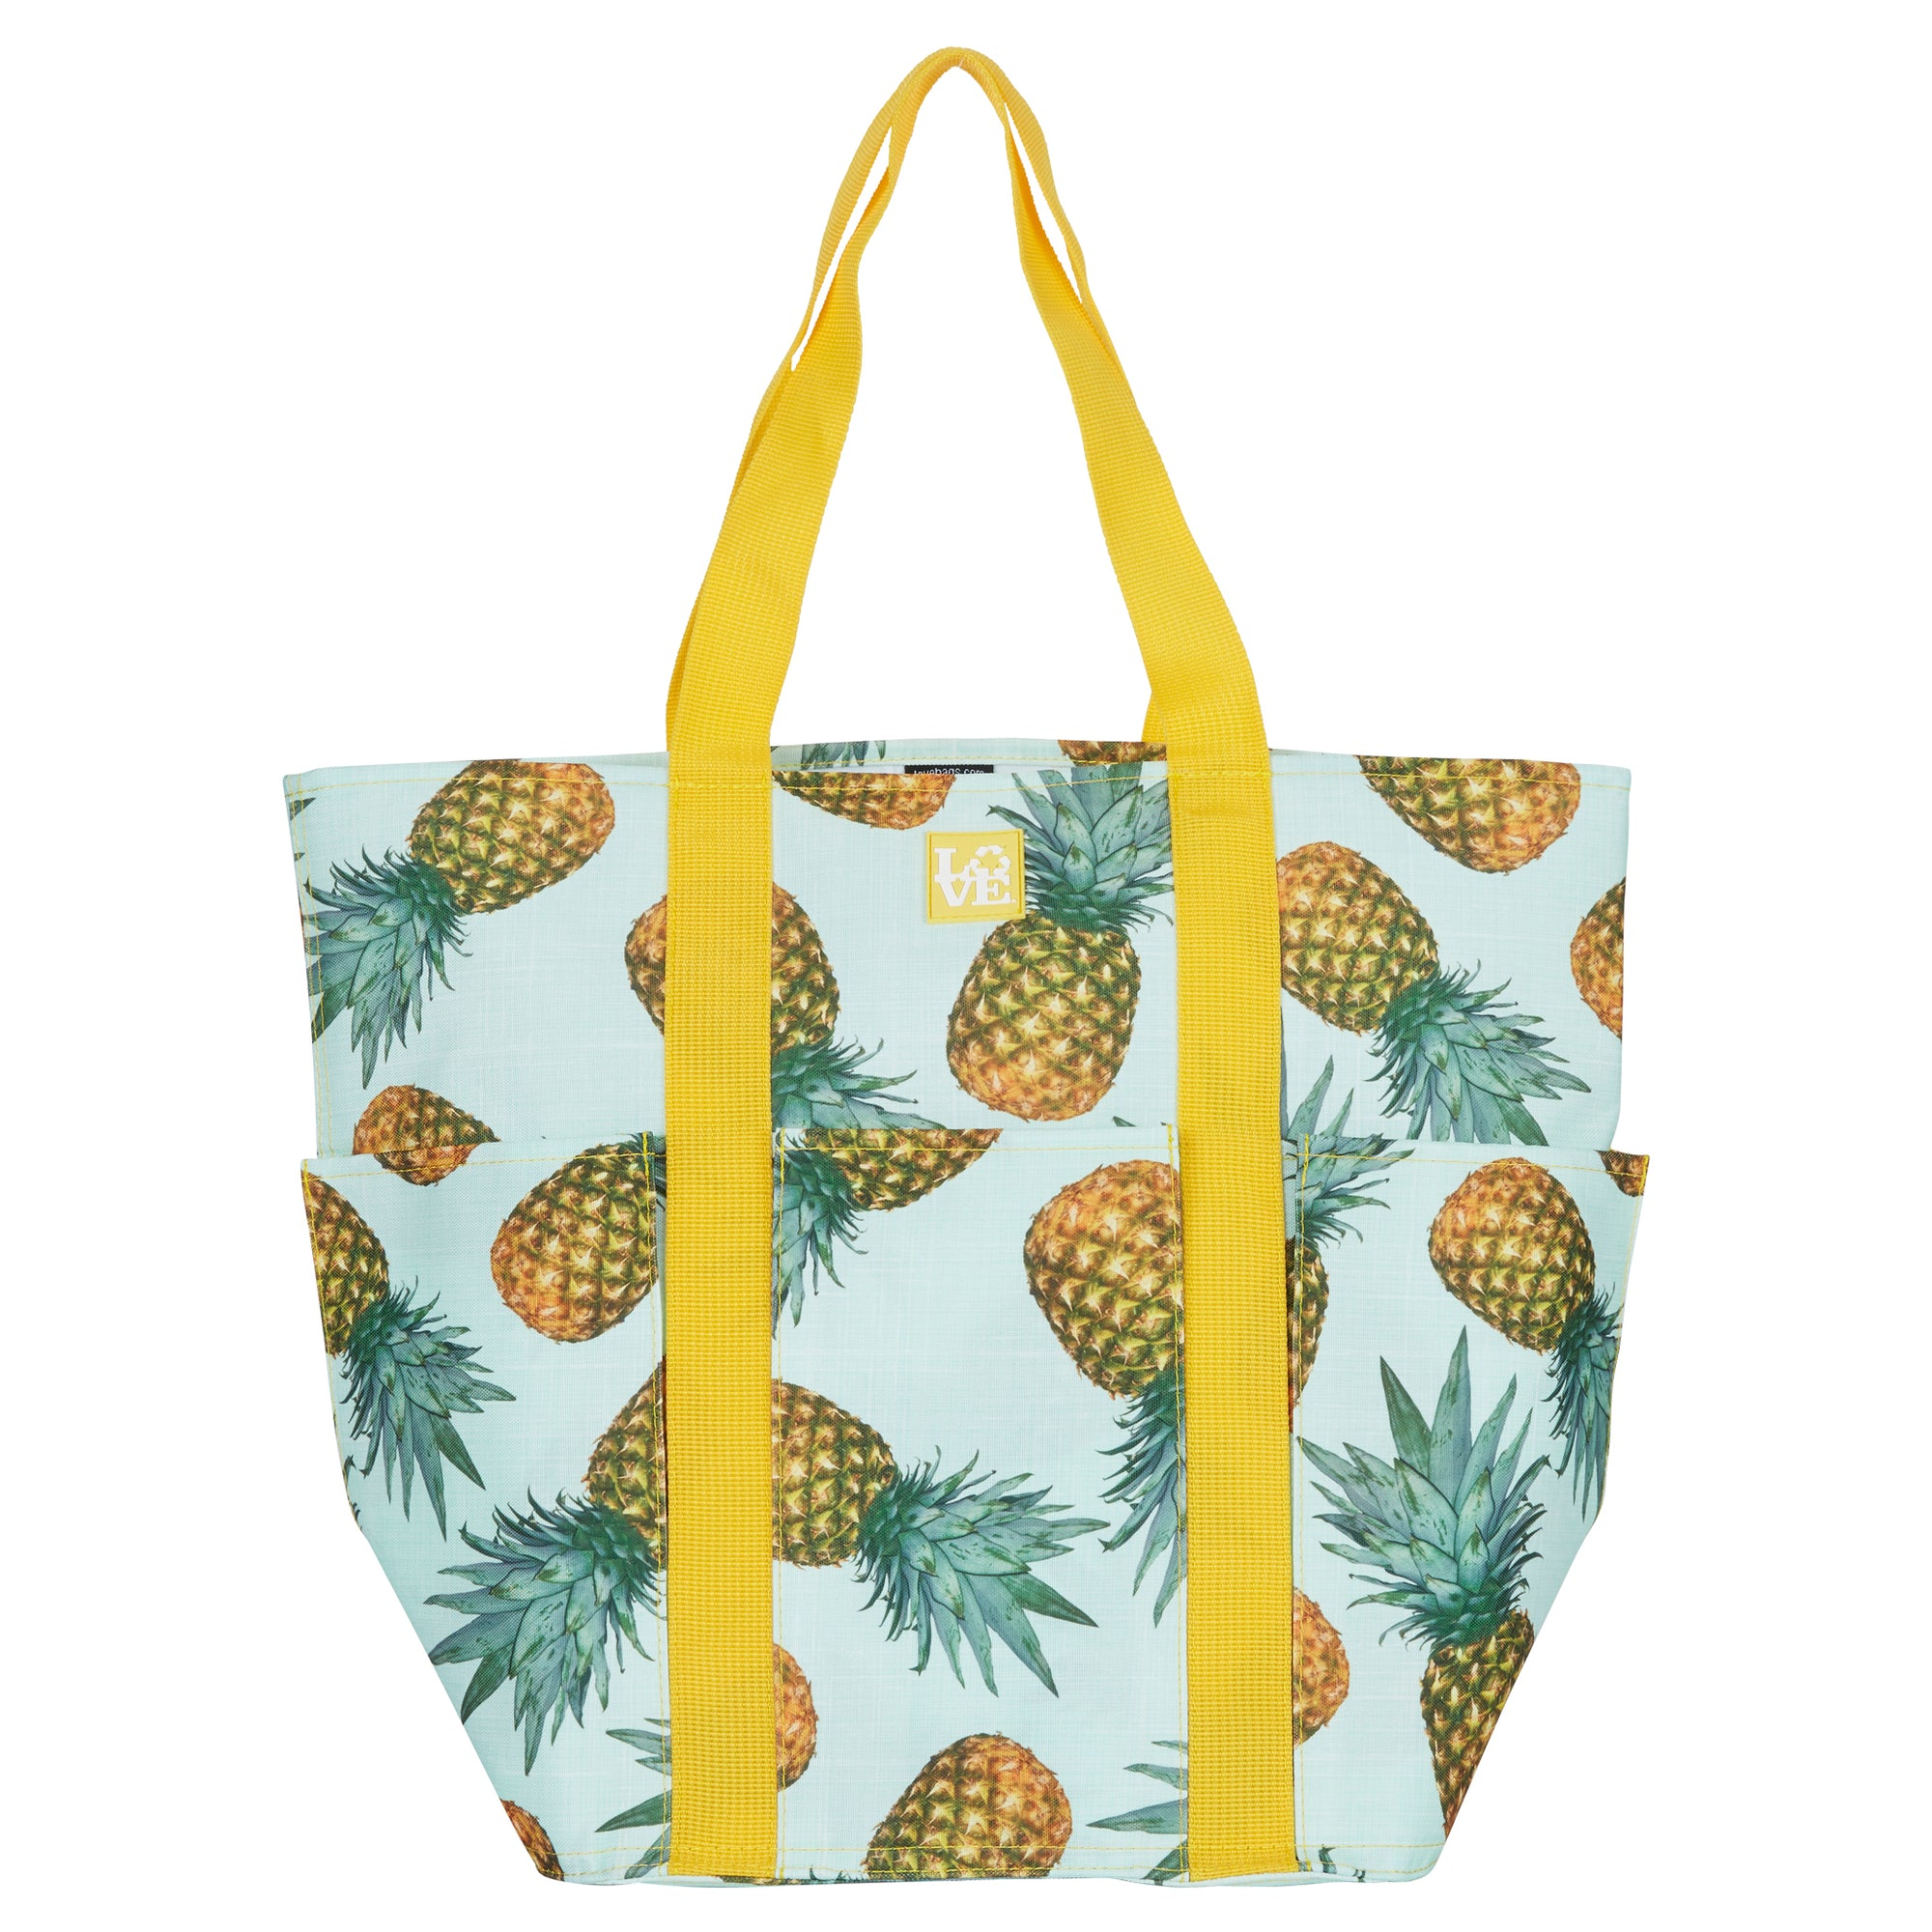 TRIO TOTE - PINEAPPLE EXPRESS